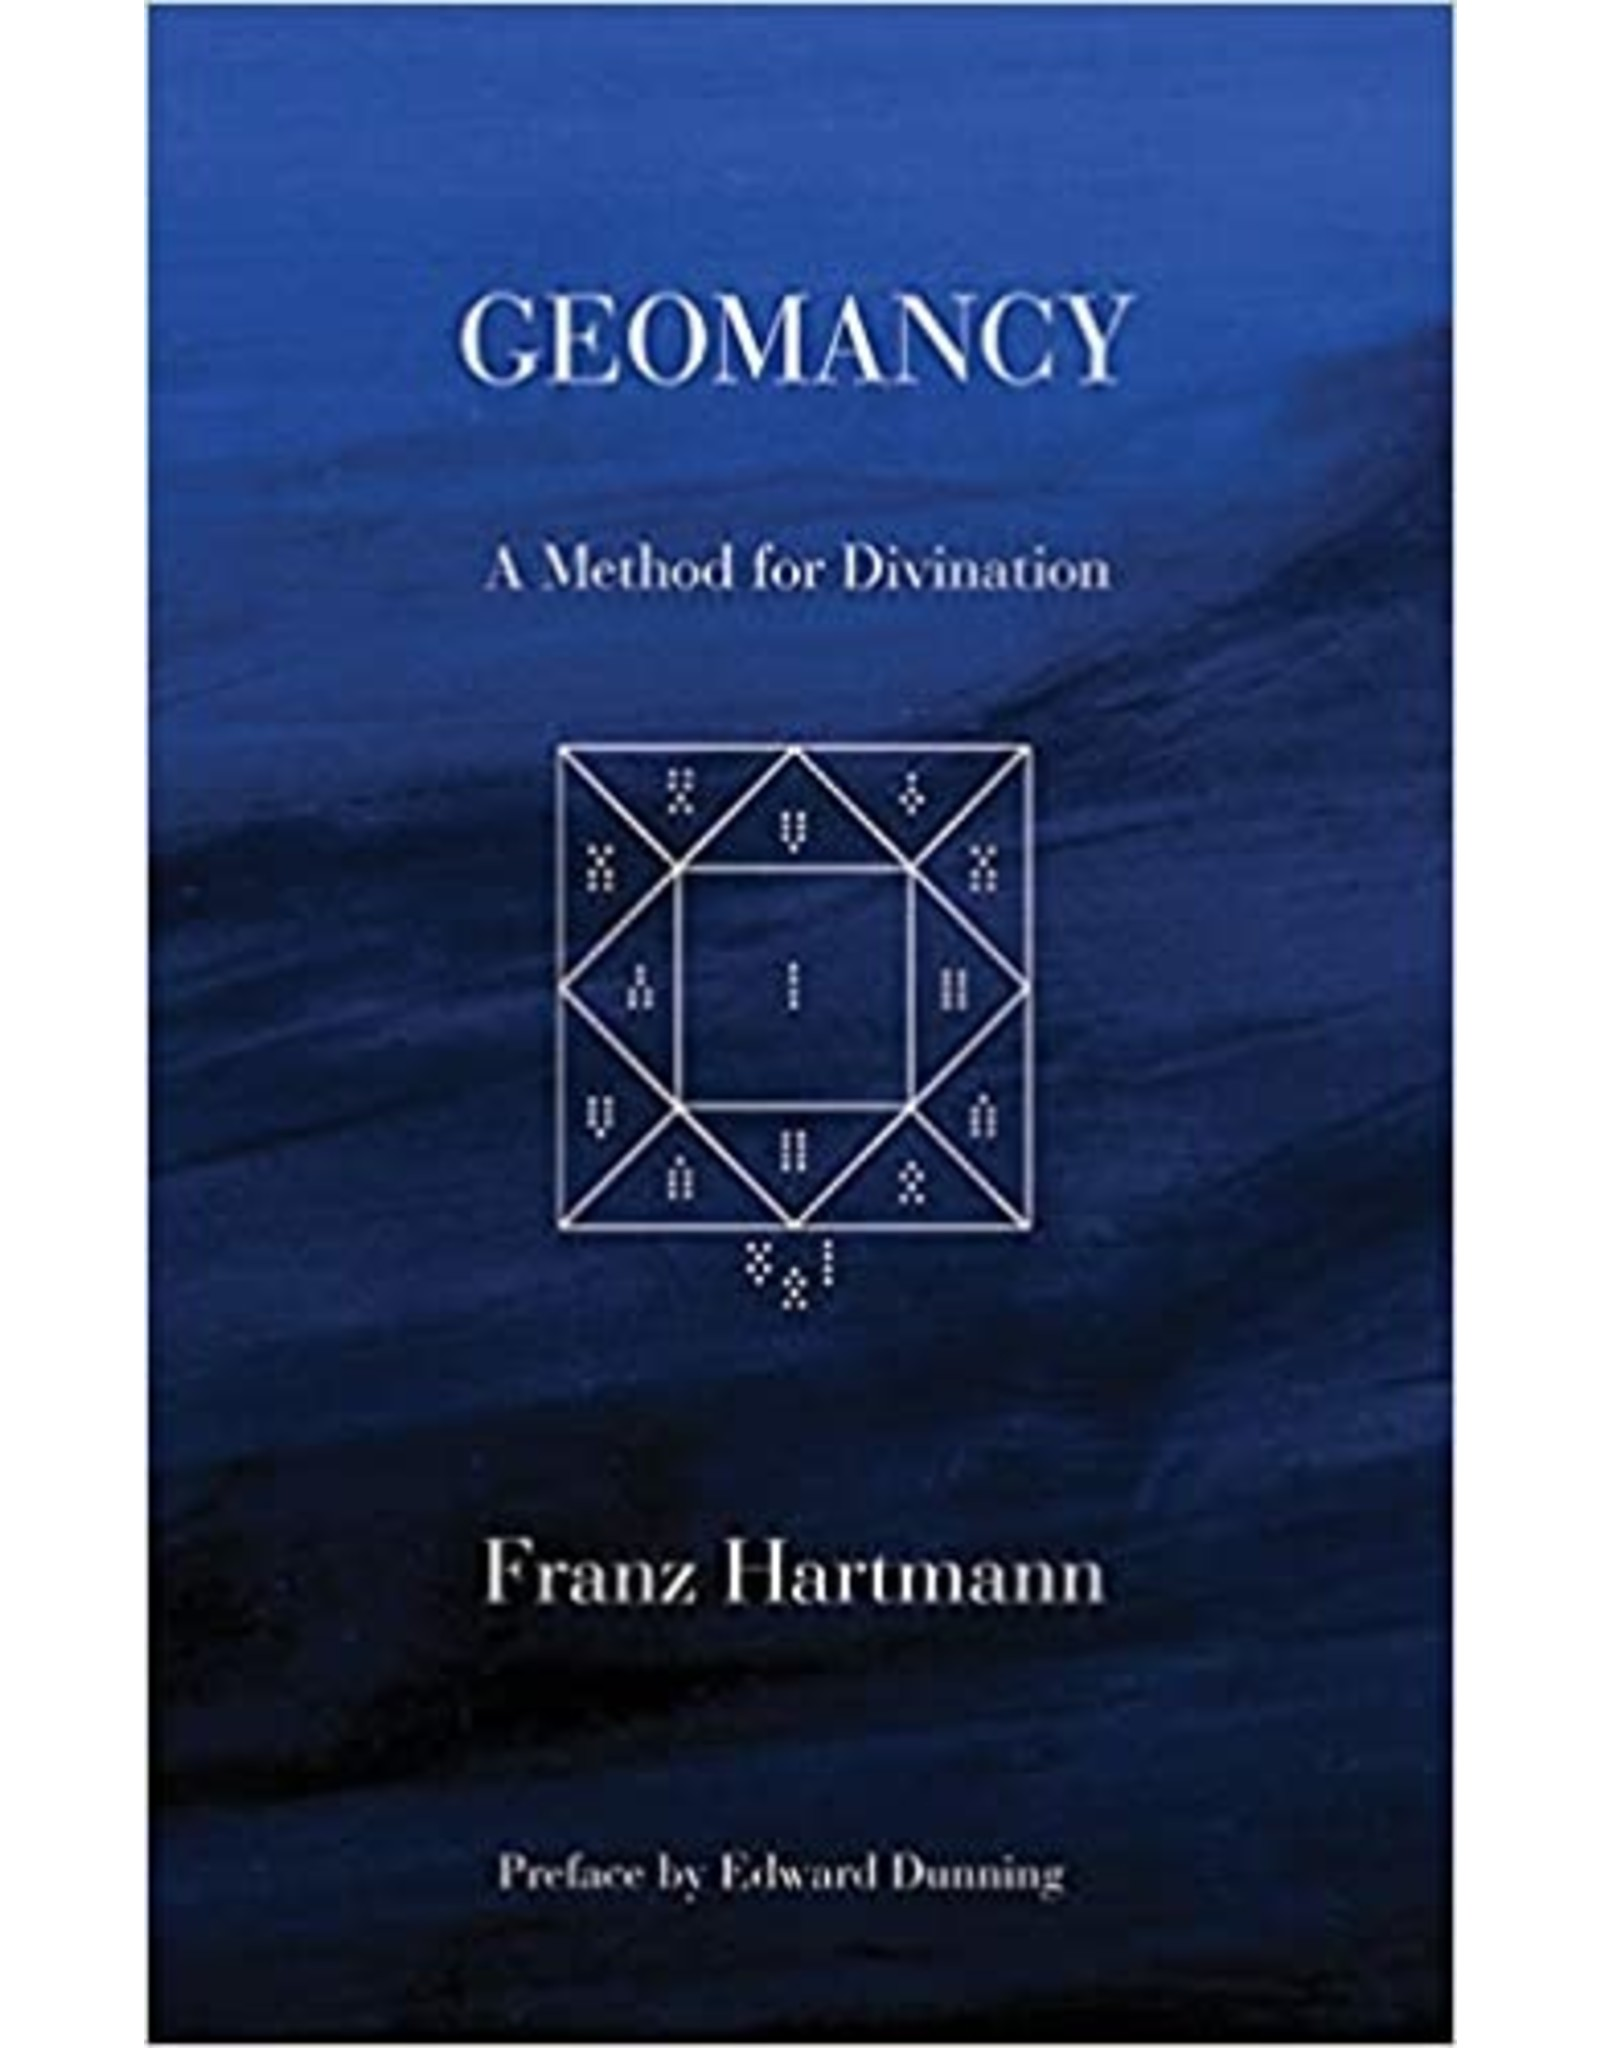 Geomancy: A Method of Divination